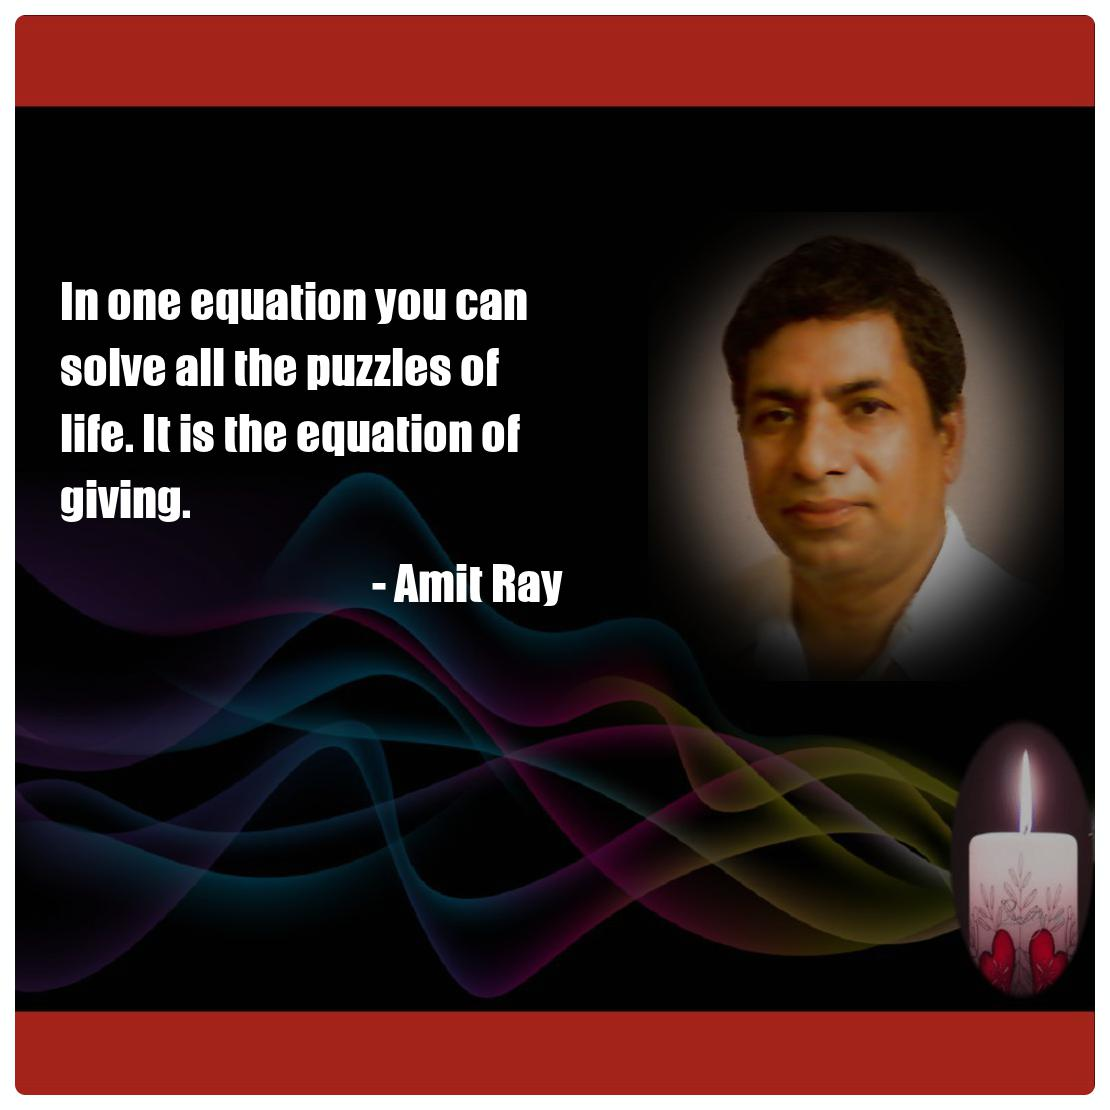 In one equation you can solve all the puzzles of life. It is the equation of giving. -- Amit Ray